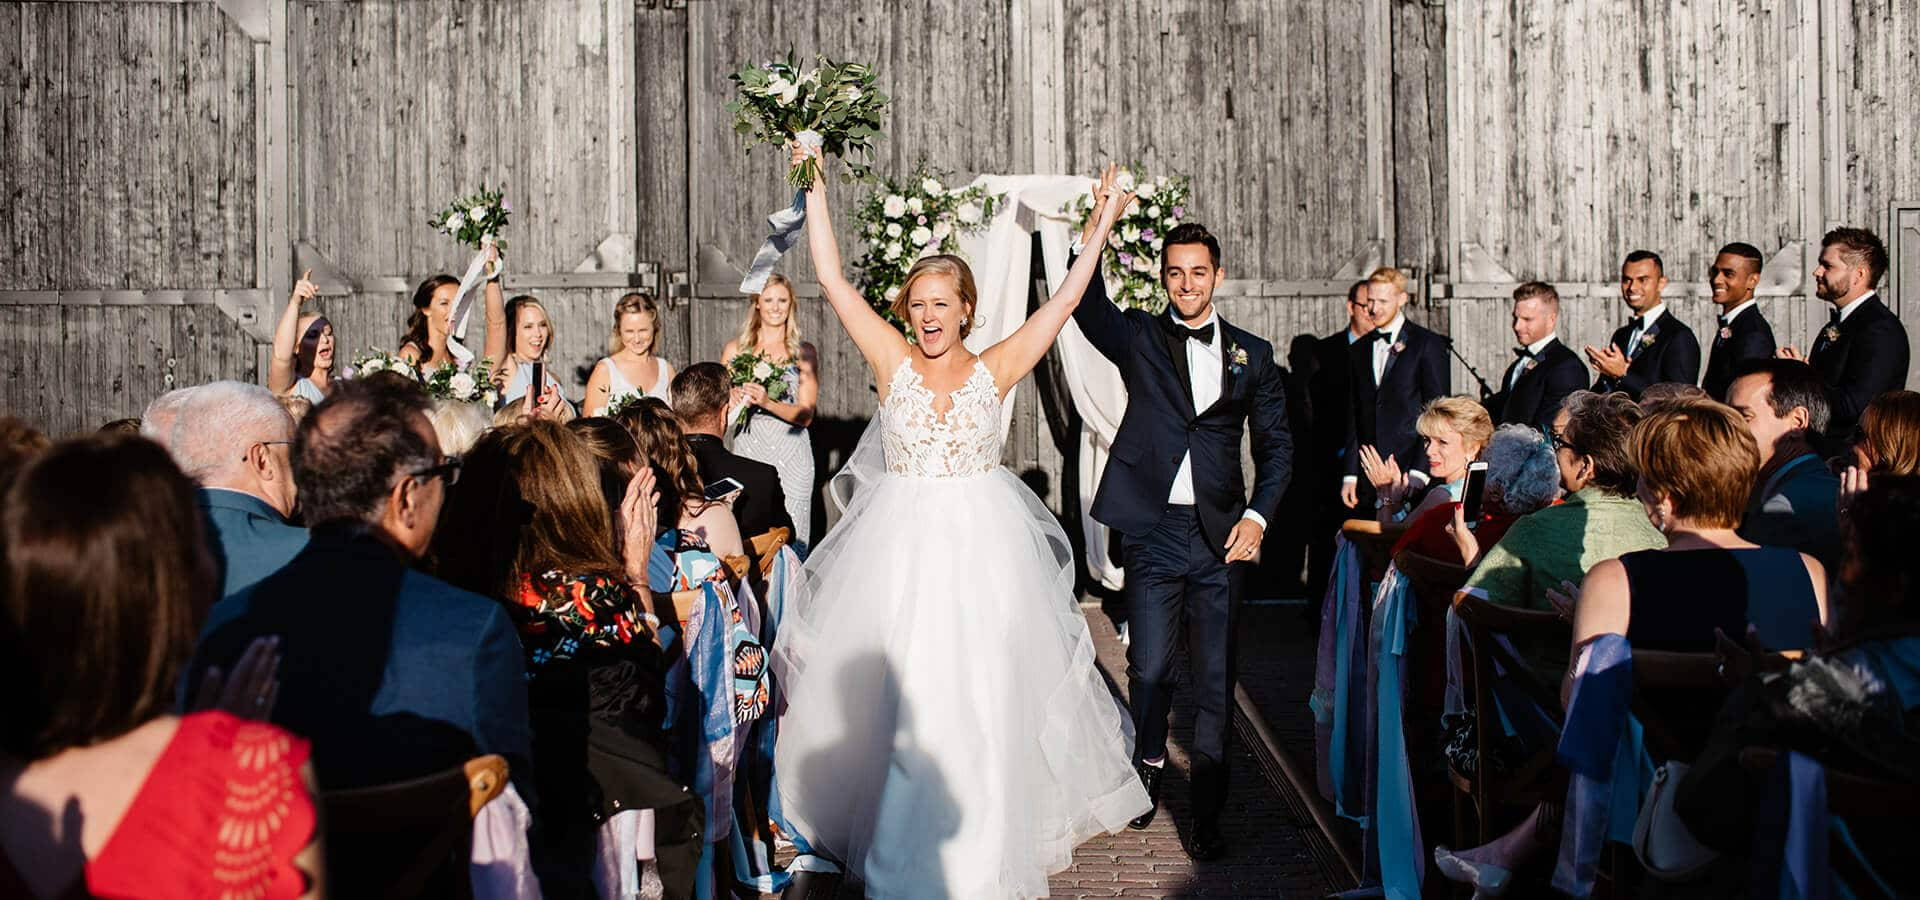 Hero image for Courtney and Dan's Urban Rustic Themed Wedding at Steam Whistle Brewery